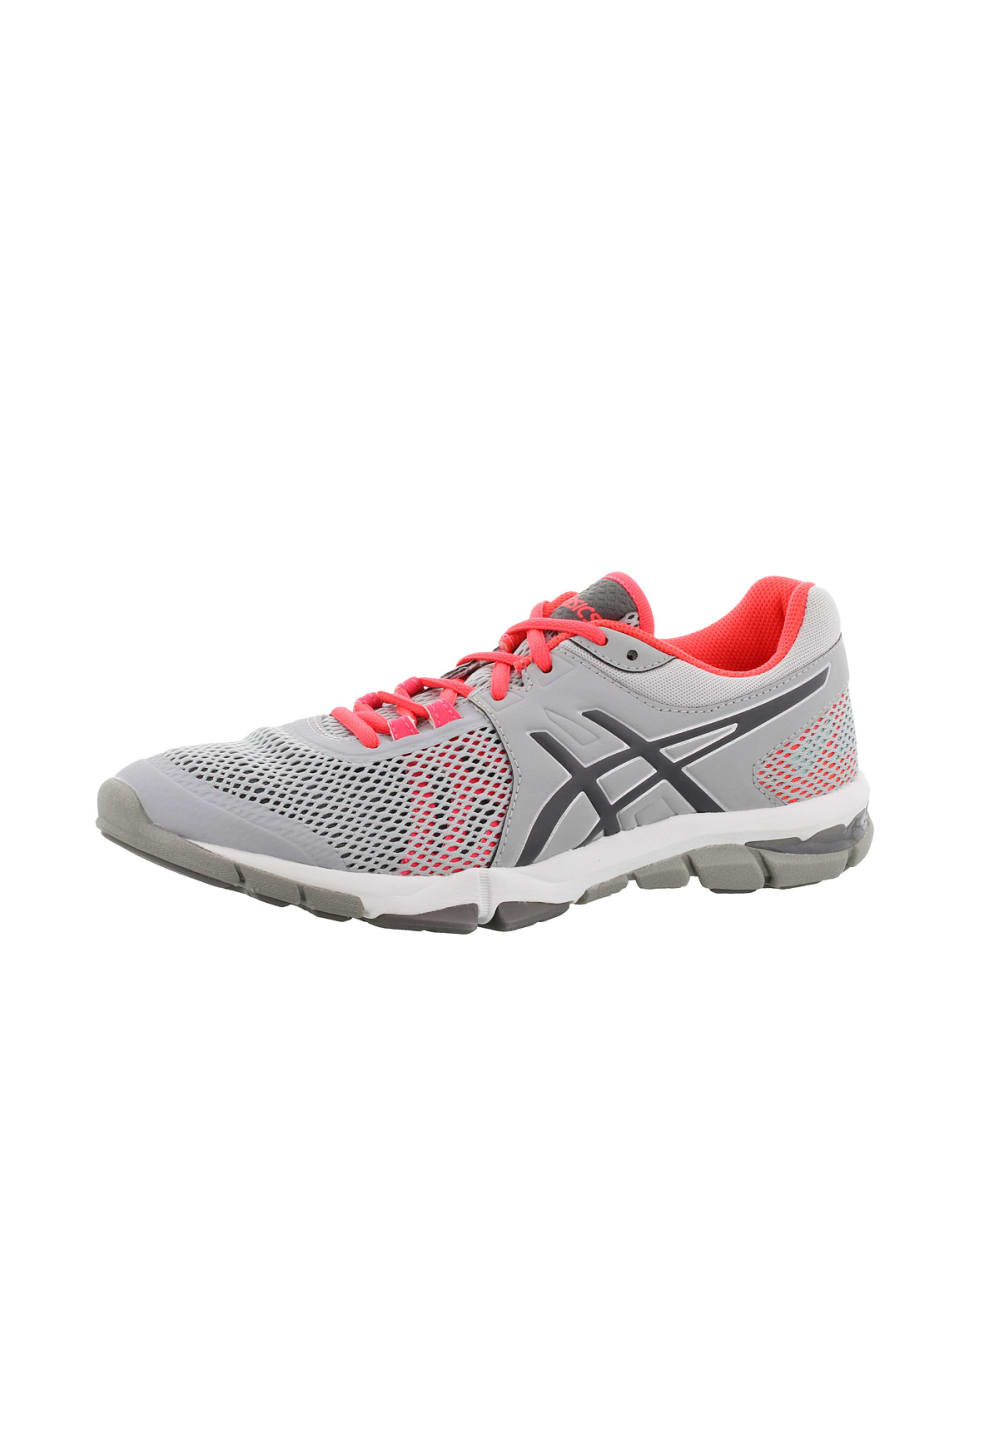 efa23e483 ASICS GEL-Craze Tr 4 - Running shoes for Women - Grey | 21RUN